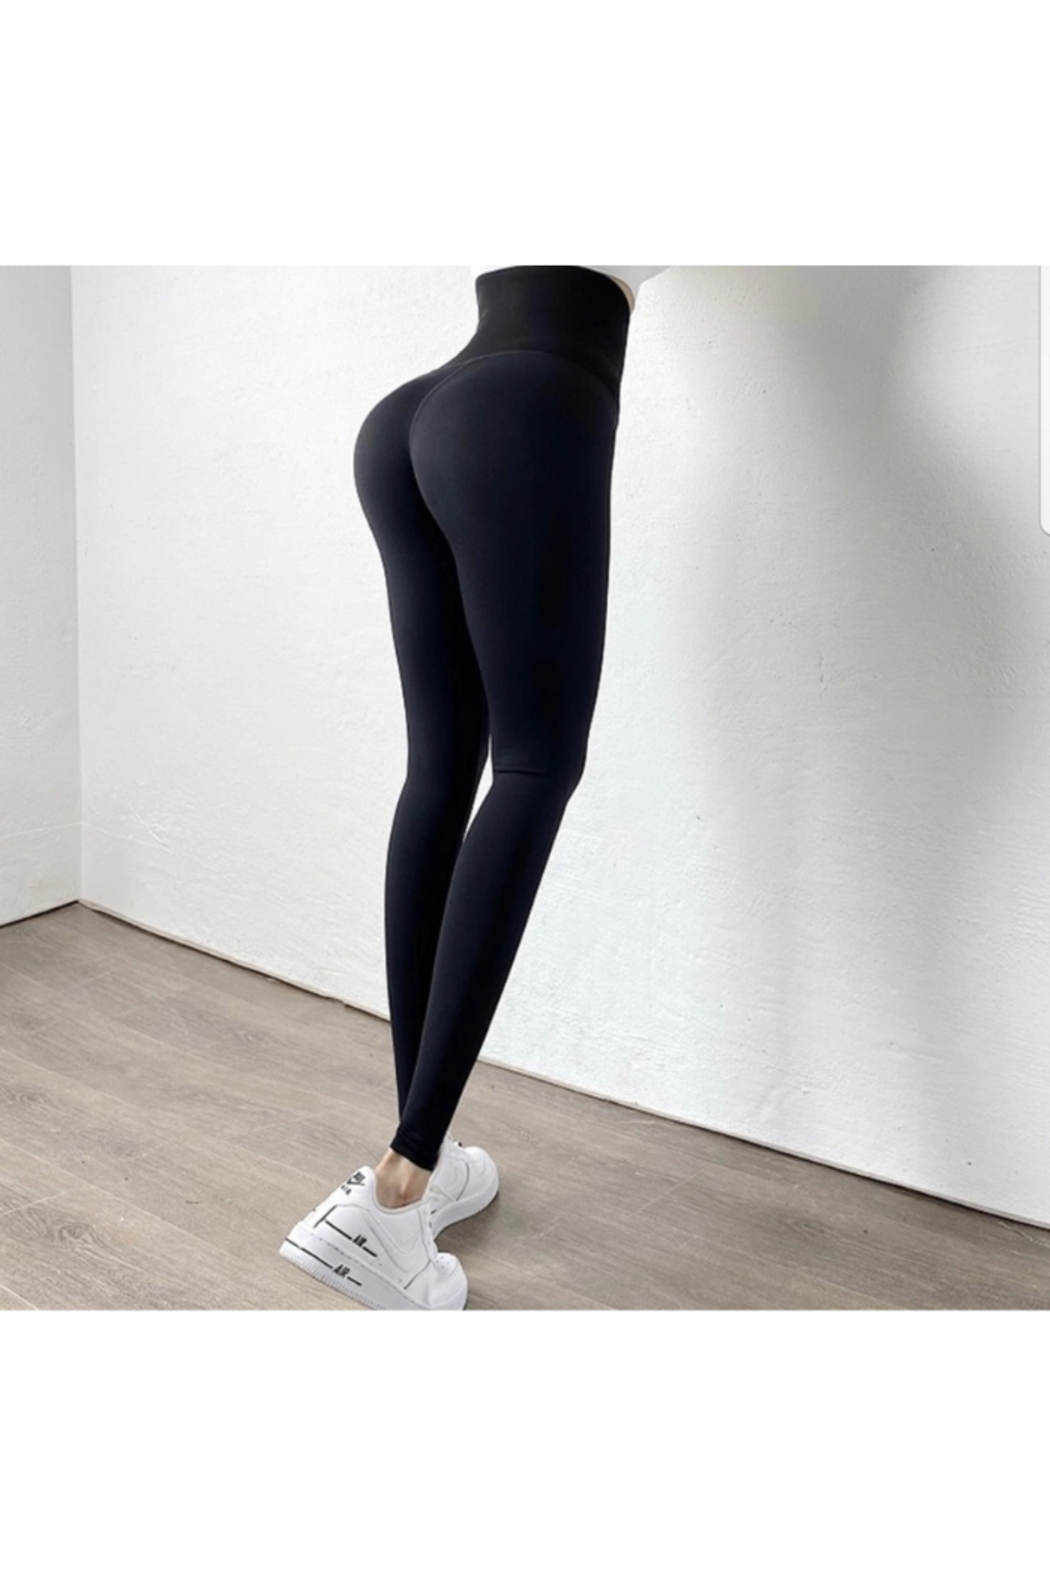 Tiny House of Fashion Snatched Leggings - Front Full Image